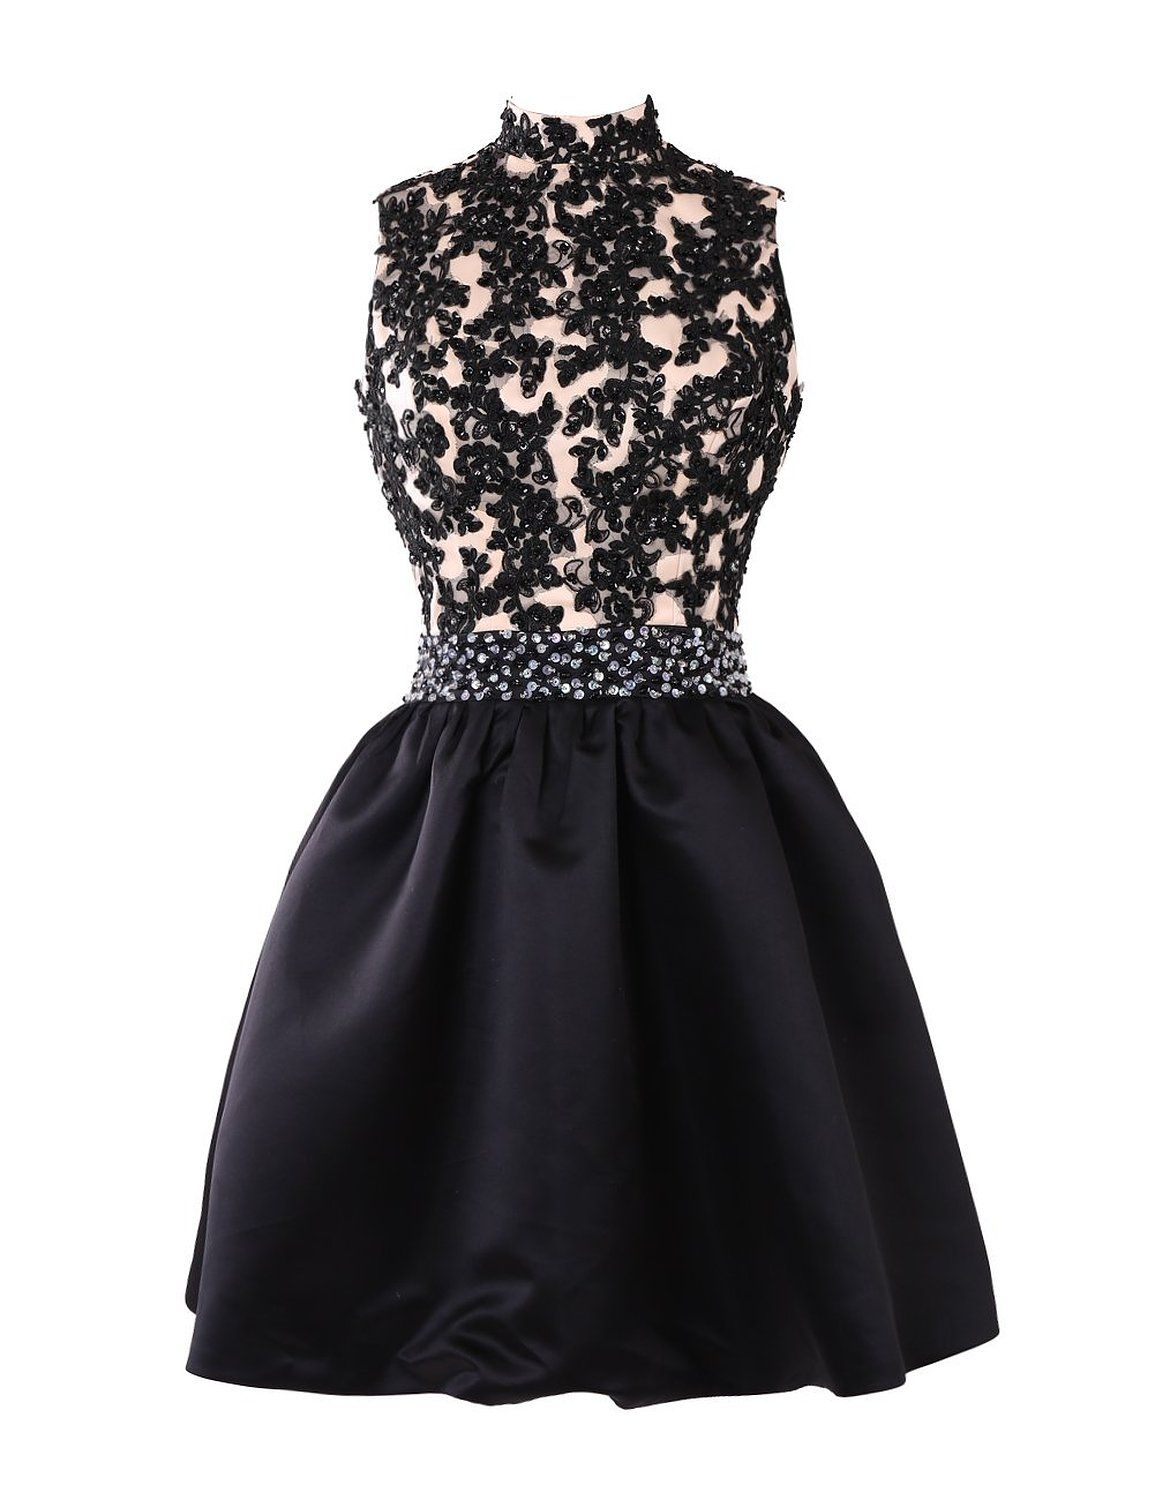 Exquisite A-line High Neck Knee Length Satin Homecoming/Cocktail Dress with Appliques Beads